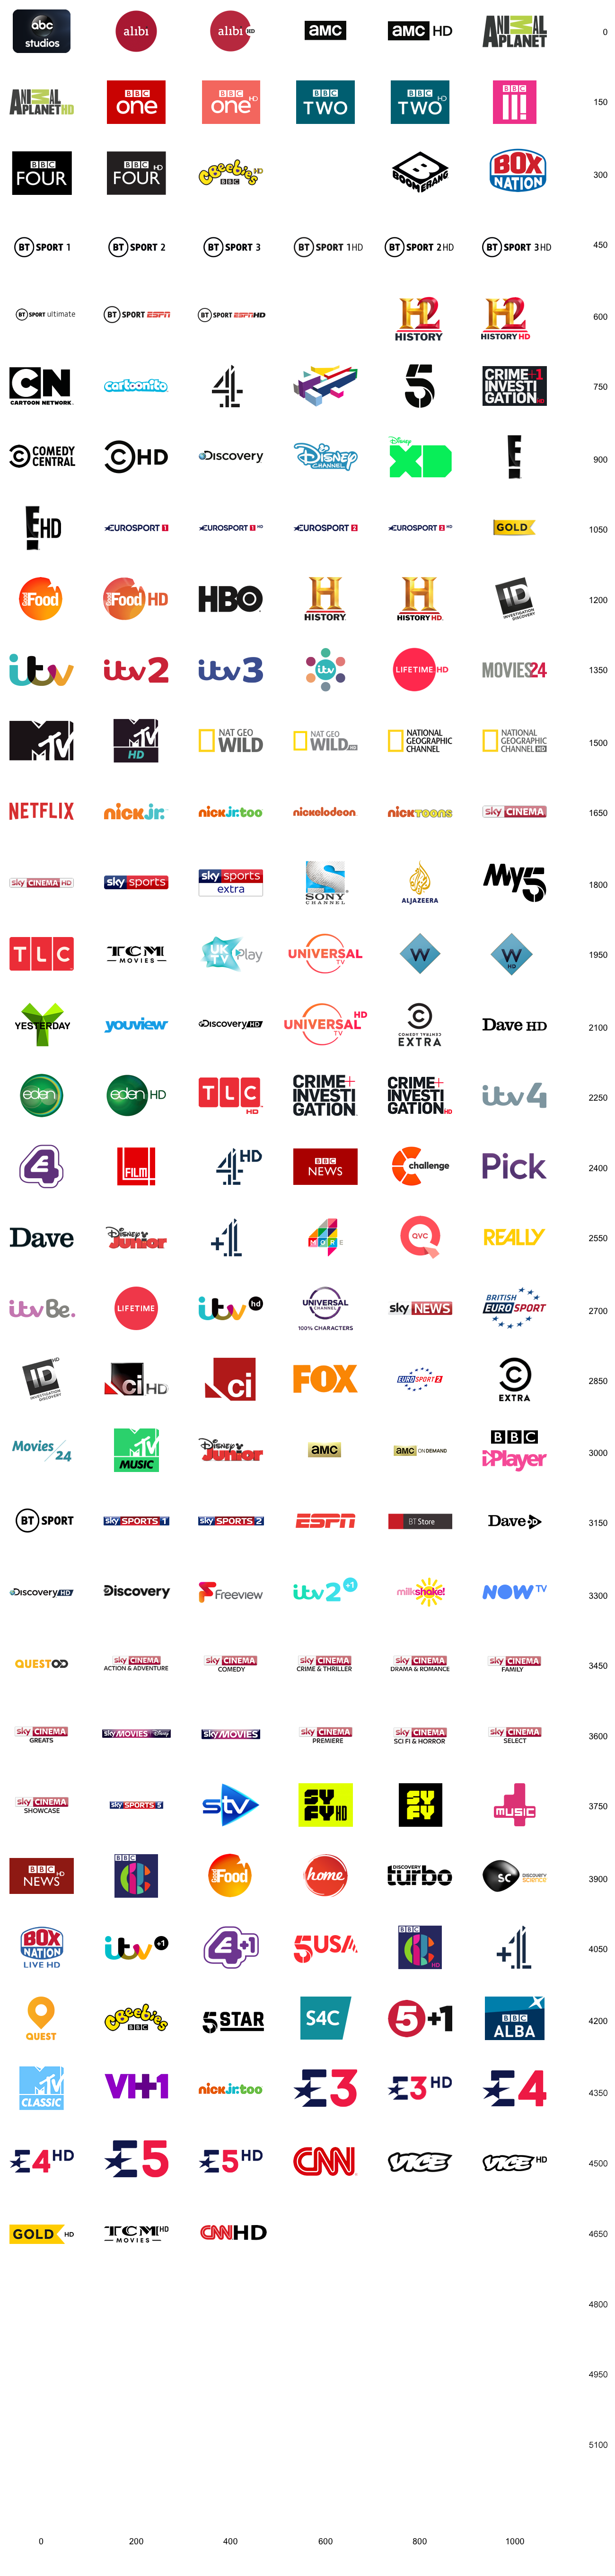 BT TV Channels & Shows | BT